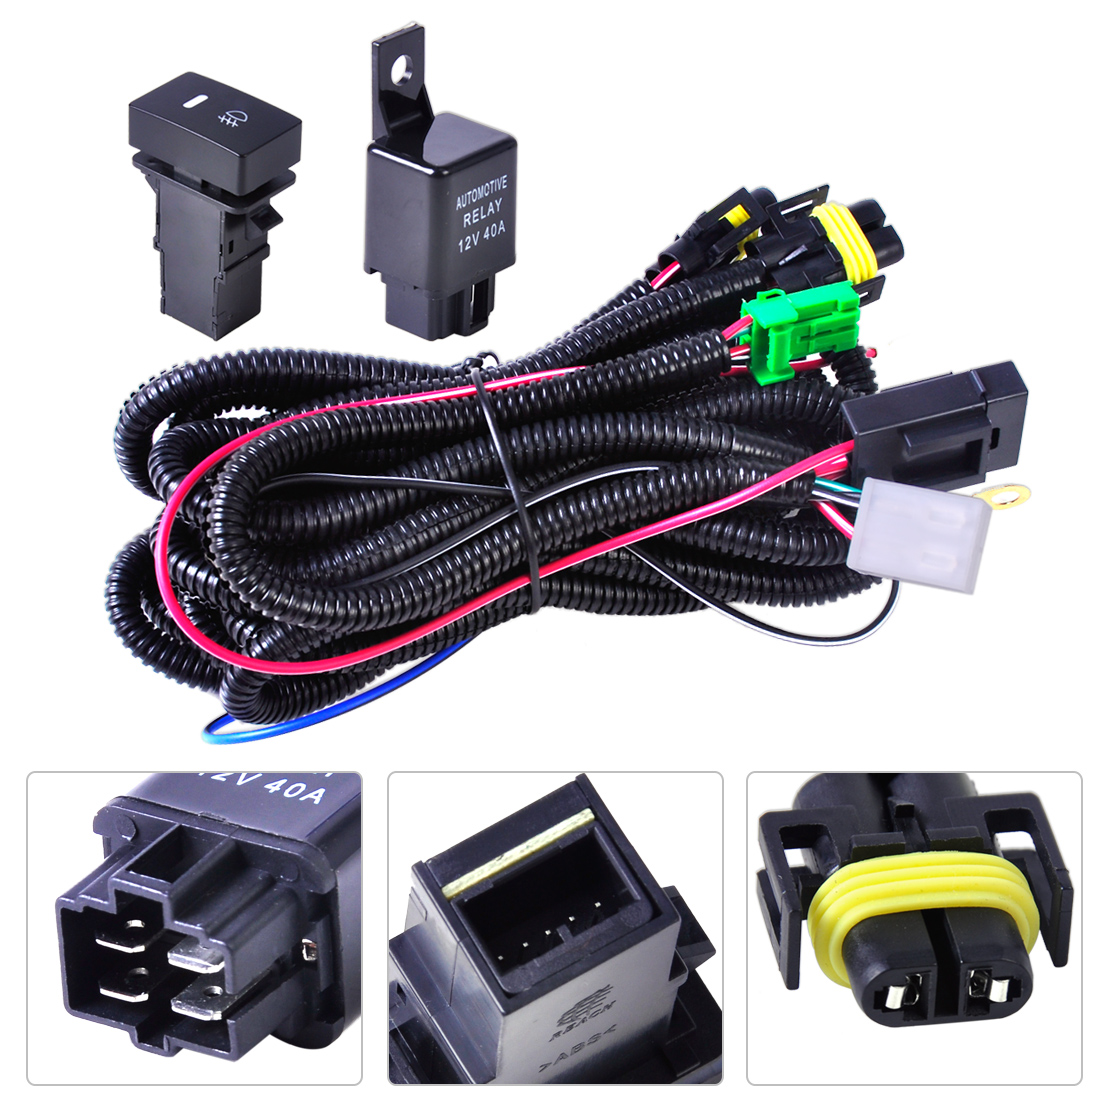 1 wiring harness sockets switch for h11 fog light lamp ford focus h11 fog light wiring harness at readyjetset.co